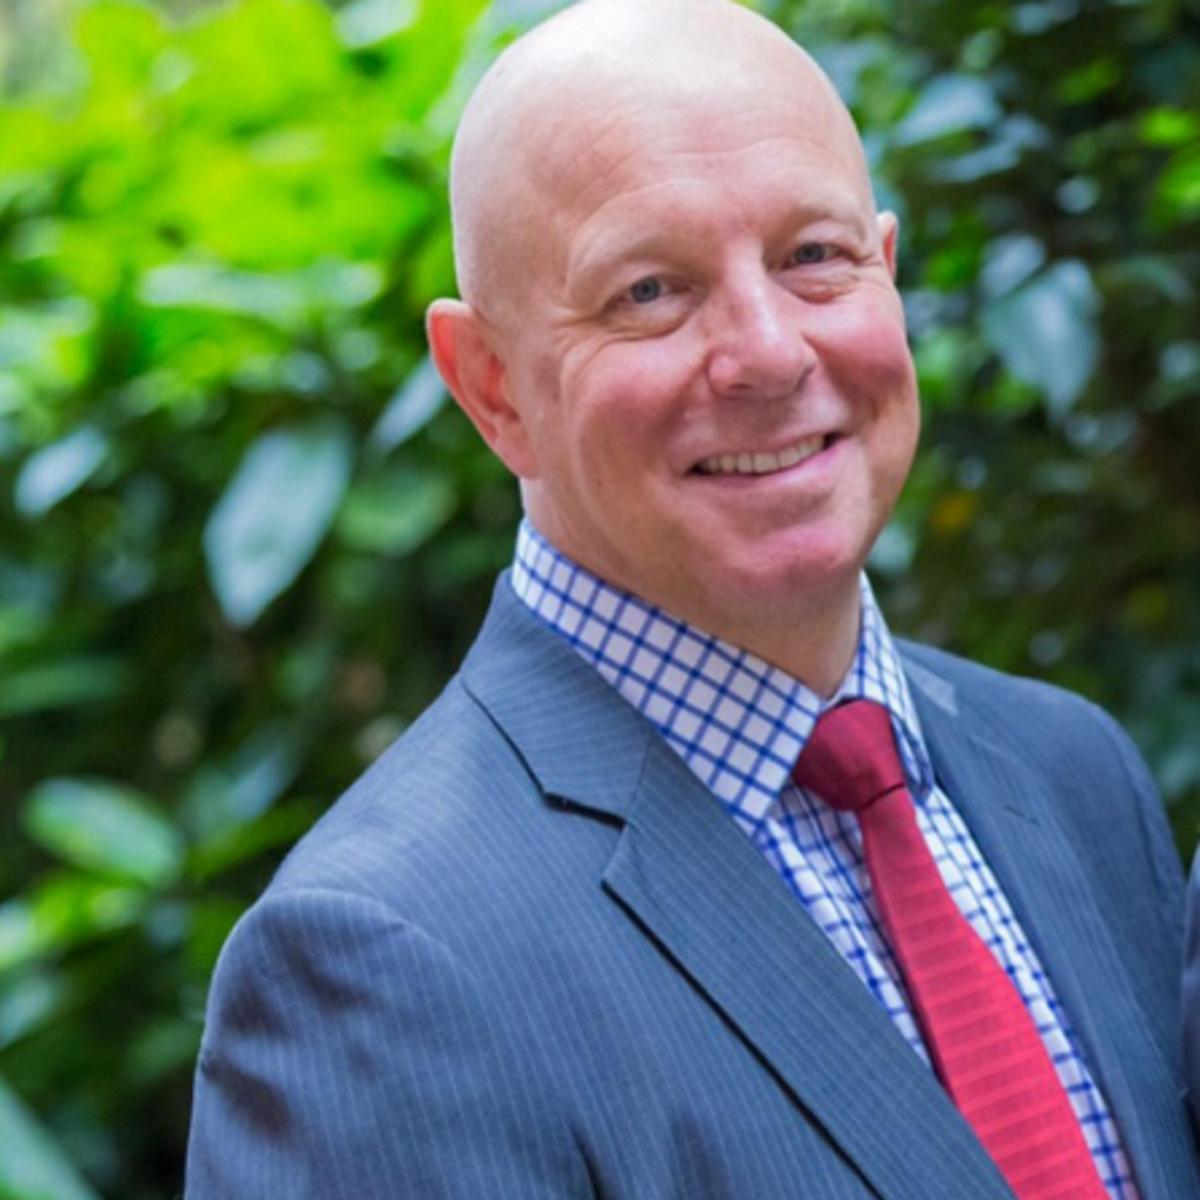 Neil Mosley is director of education at Pulse Group